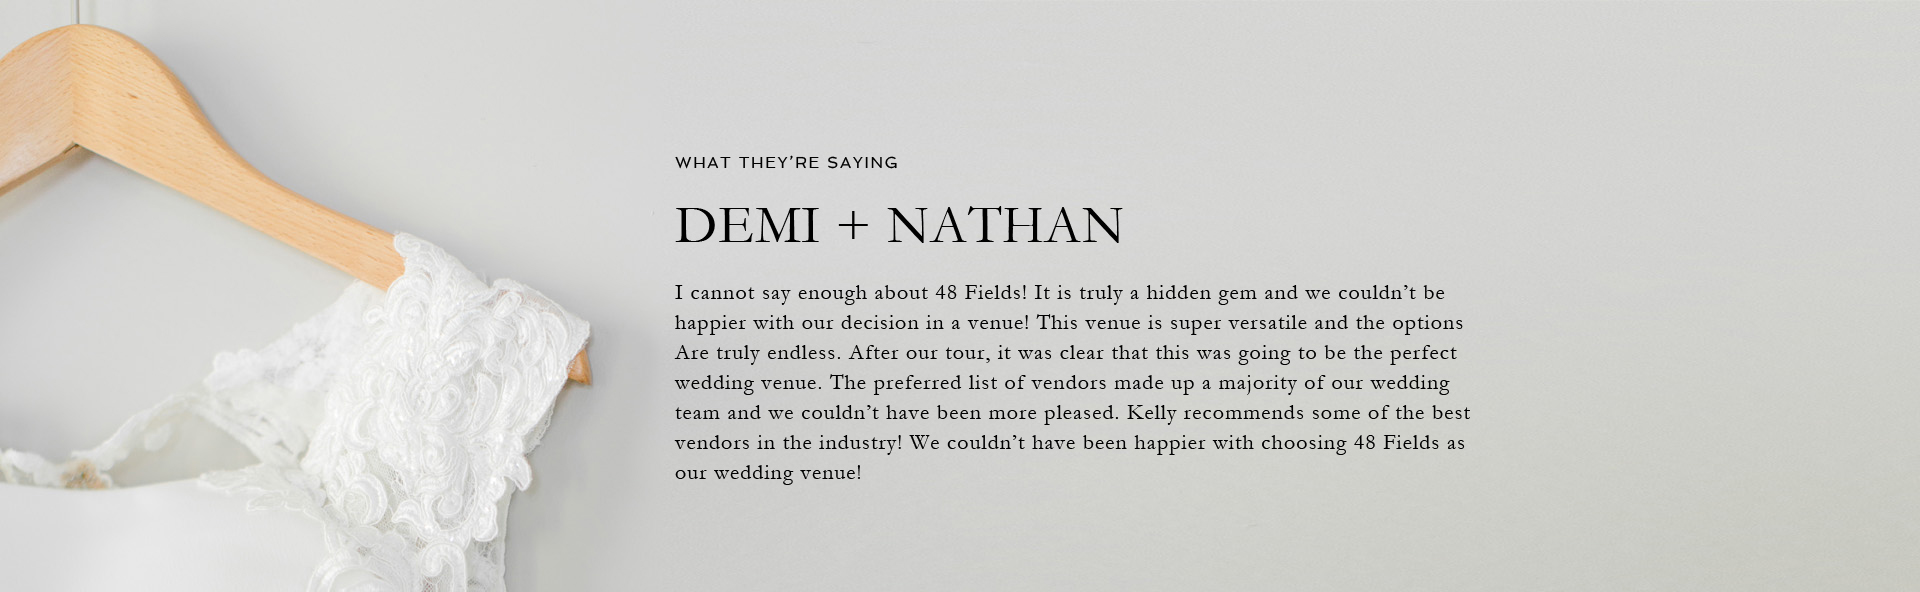 real-wedding-reviews-demi-nathan